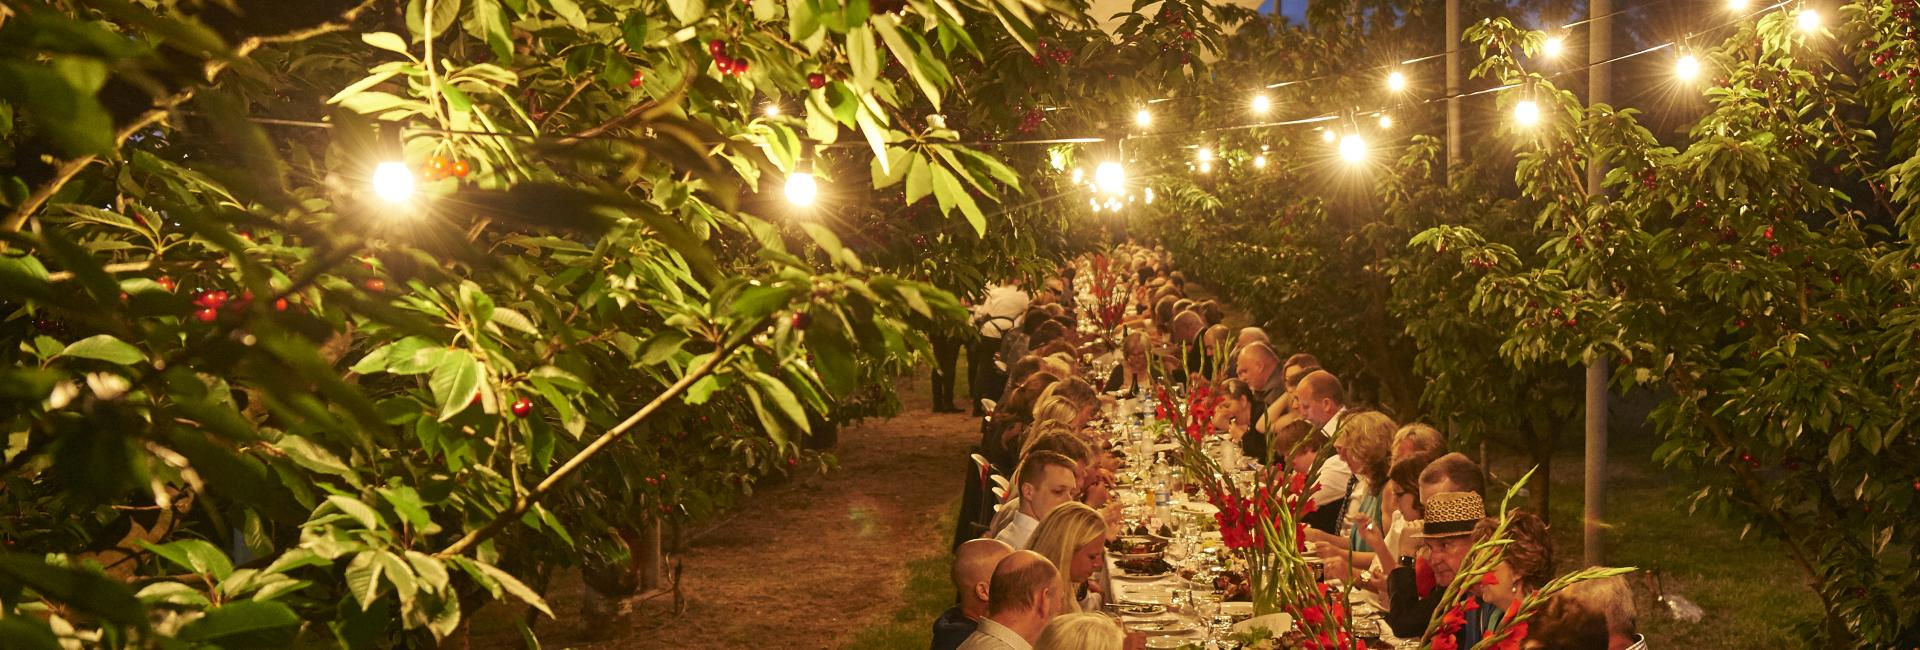 long table dinner outdoors with festoon lights